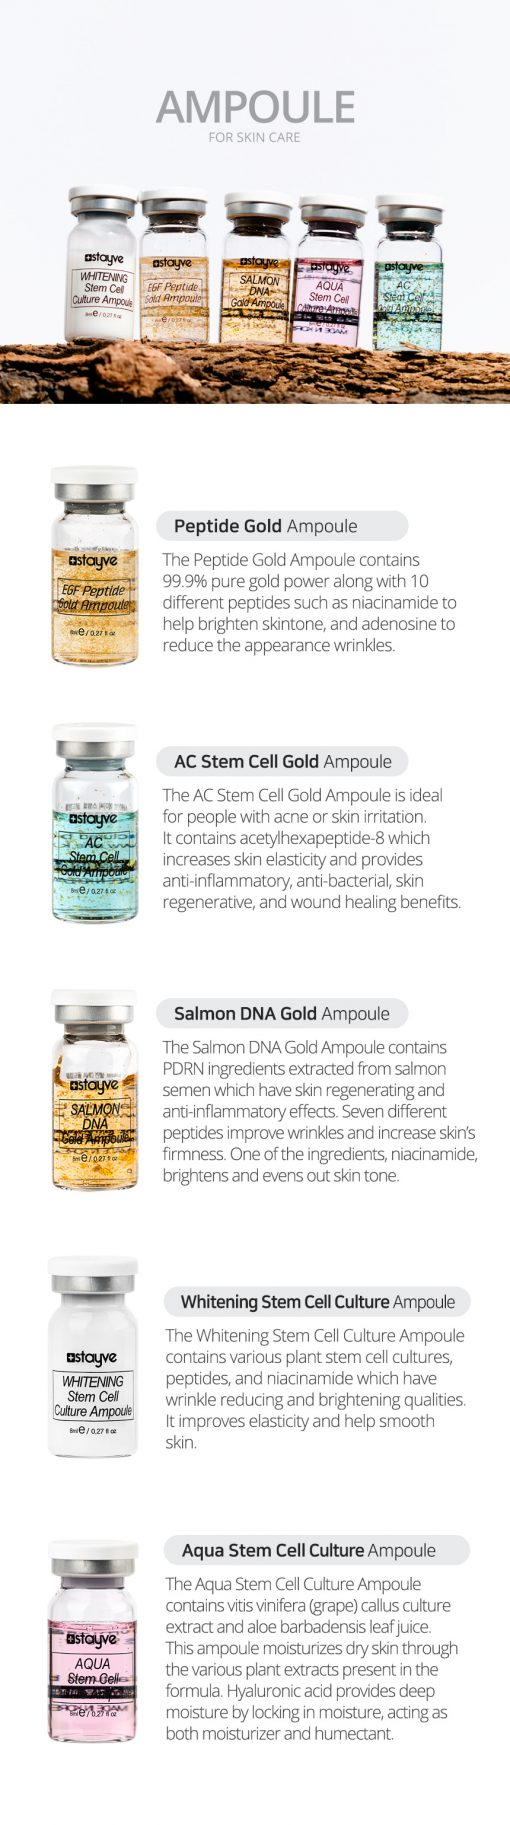 Buy Now Stayve Aqua Stem Cell Culture Ampoule | Best BB Cream